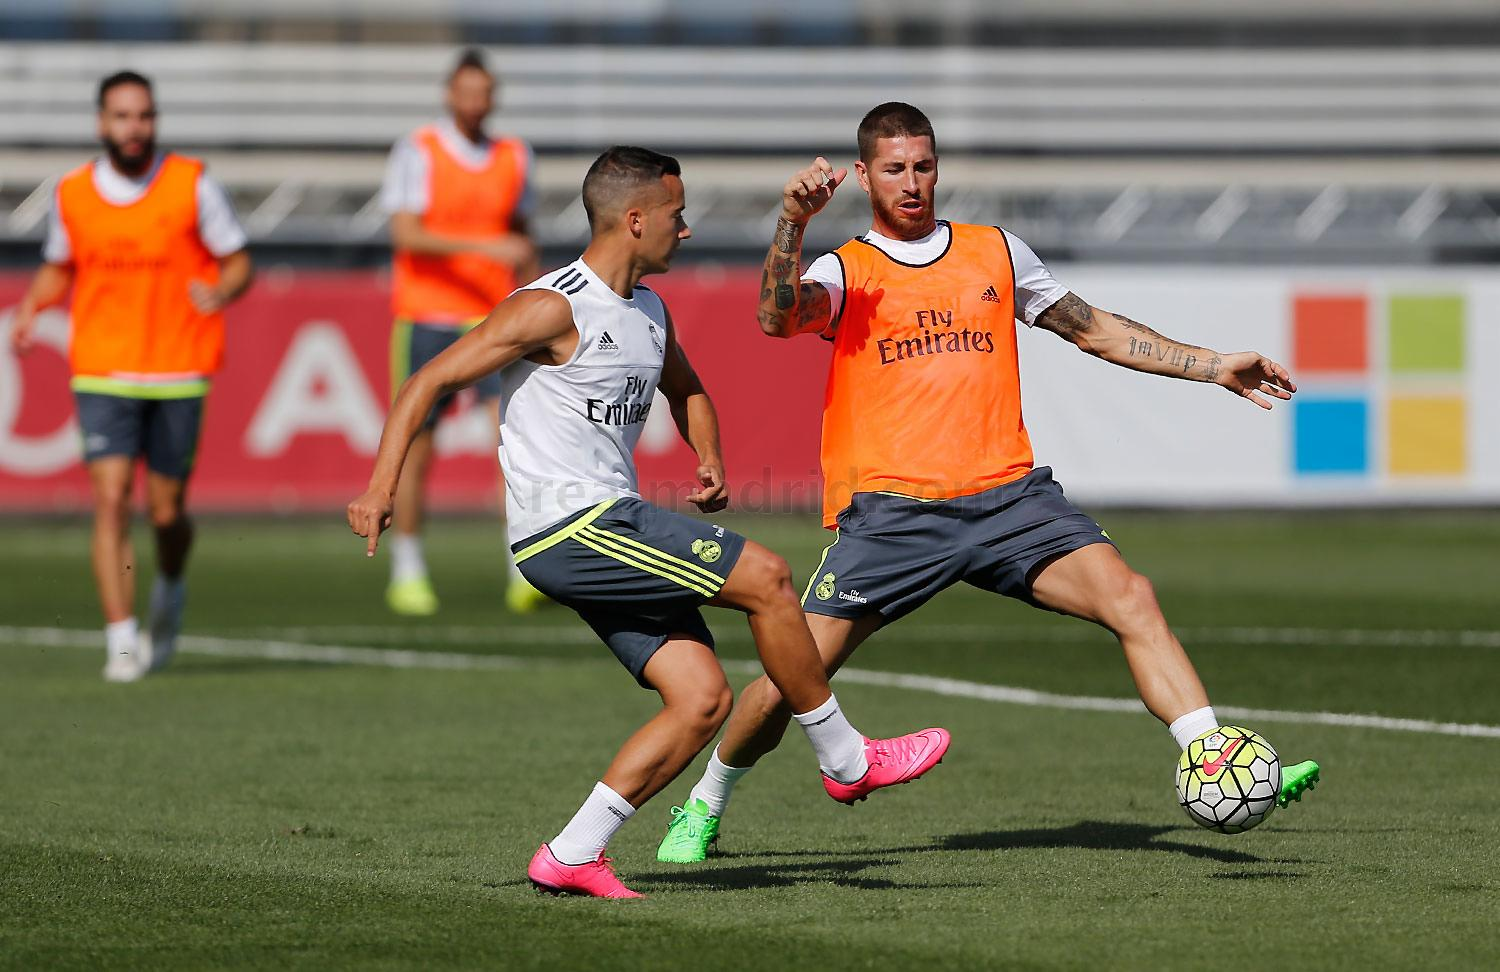 Real Madrid - Entrenamiento del Real Madrid - 10-09-2015